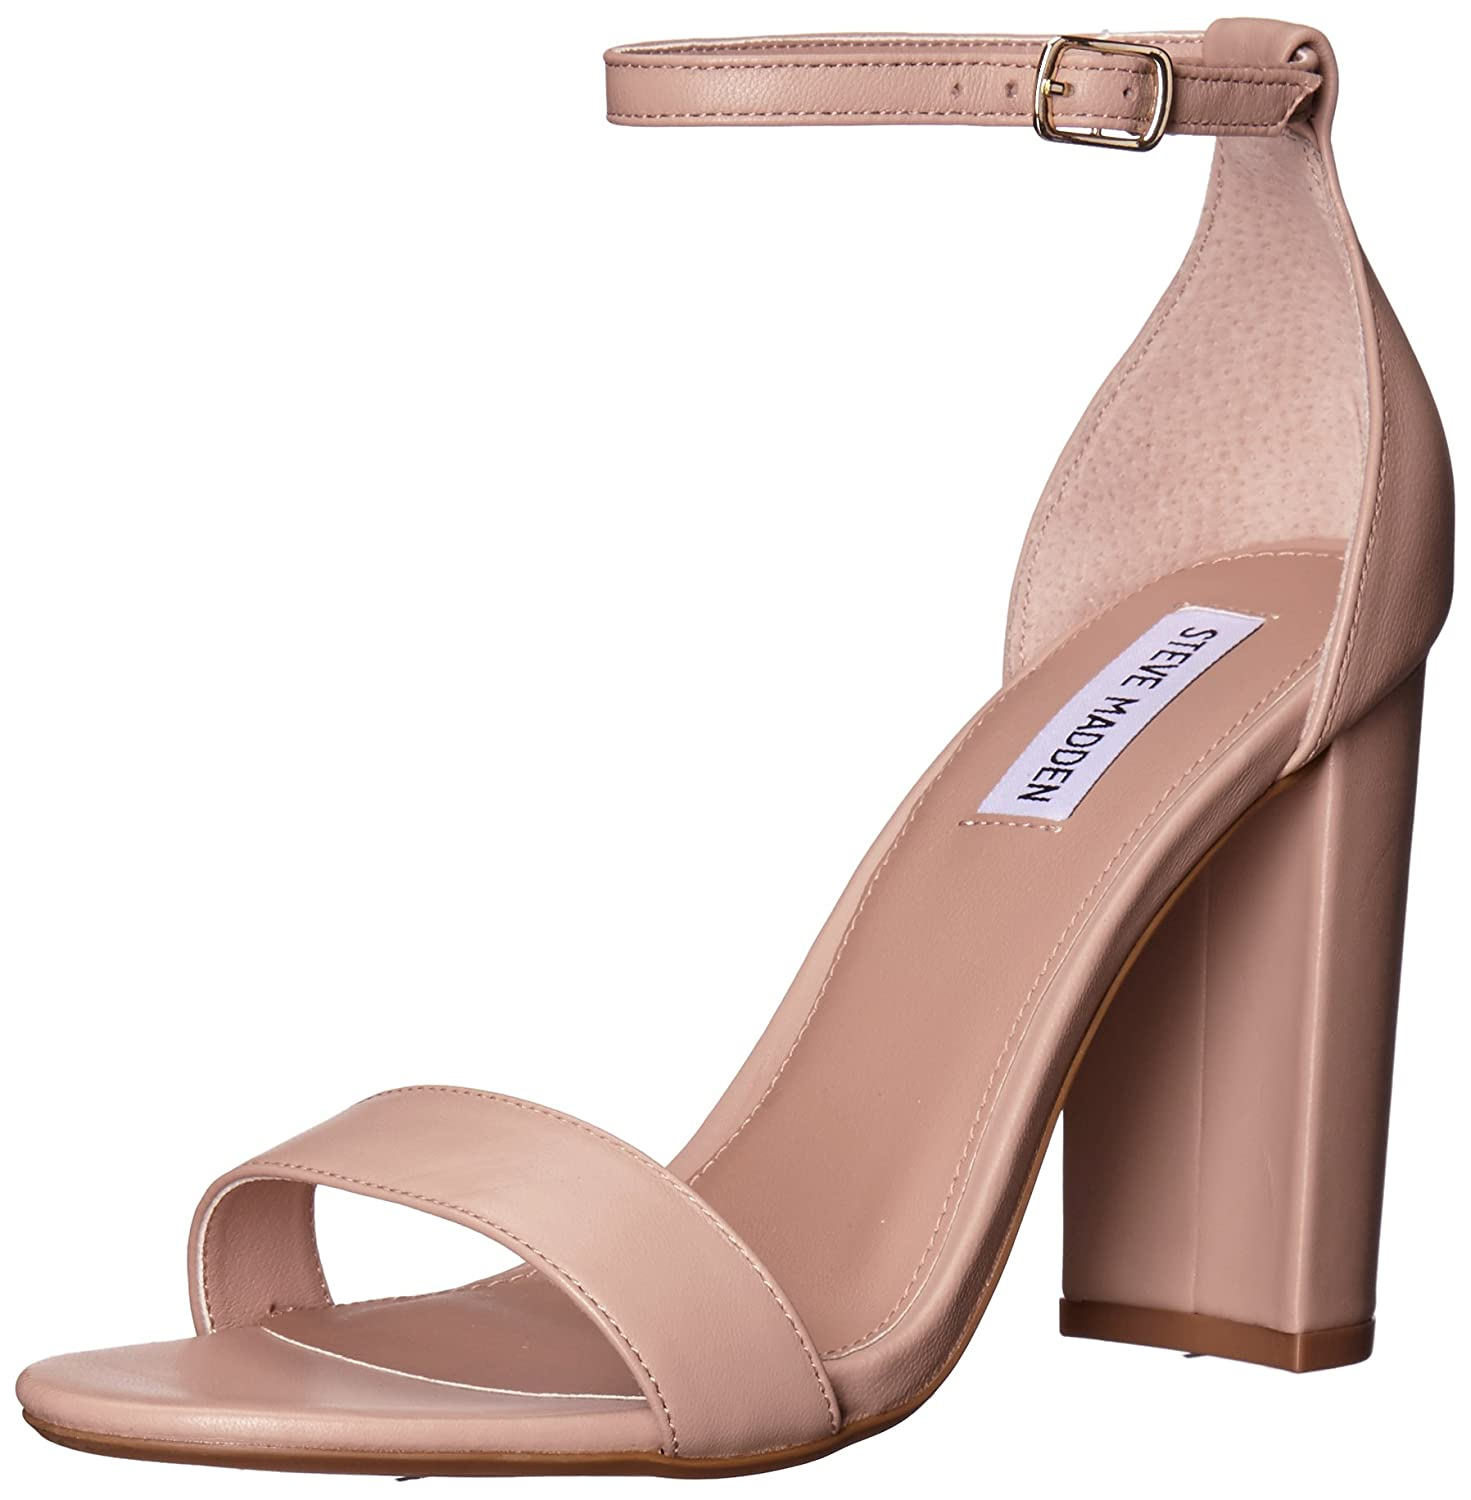 Steve Madden Women's Carrson Dress Sandal B0788BTQ1D 4 B(M) US|Blush Leather